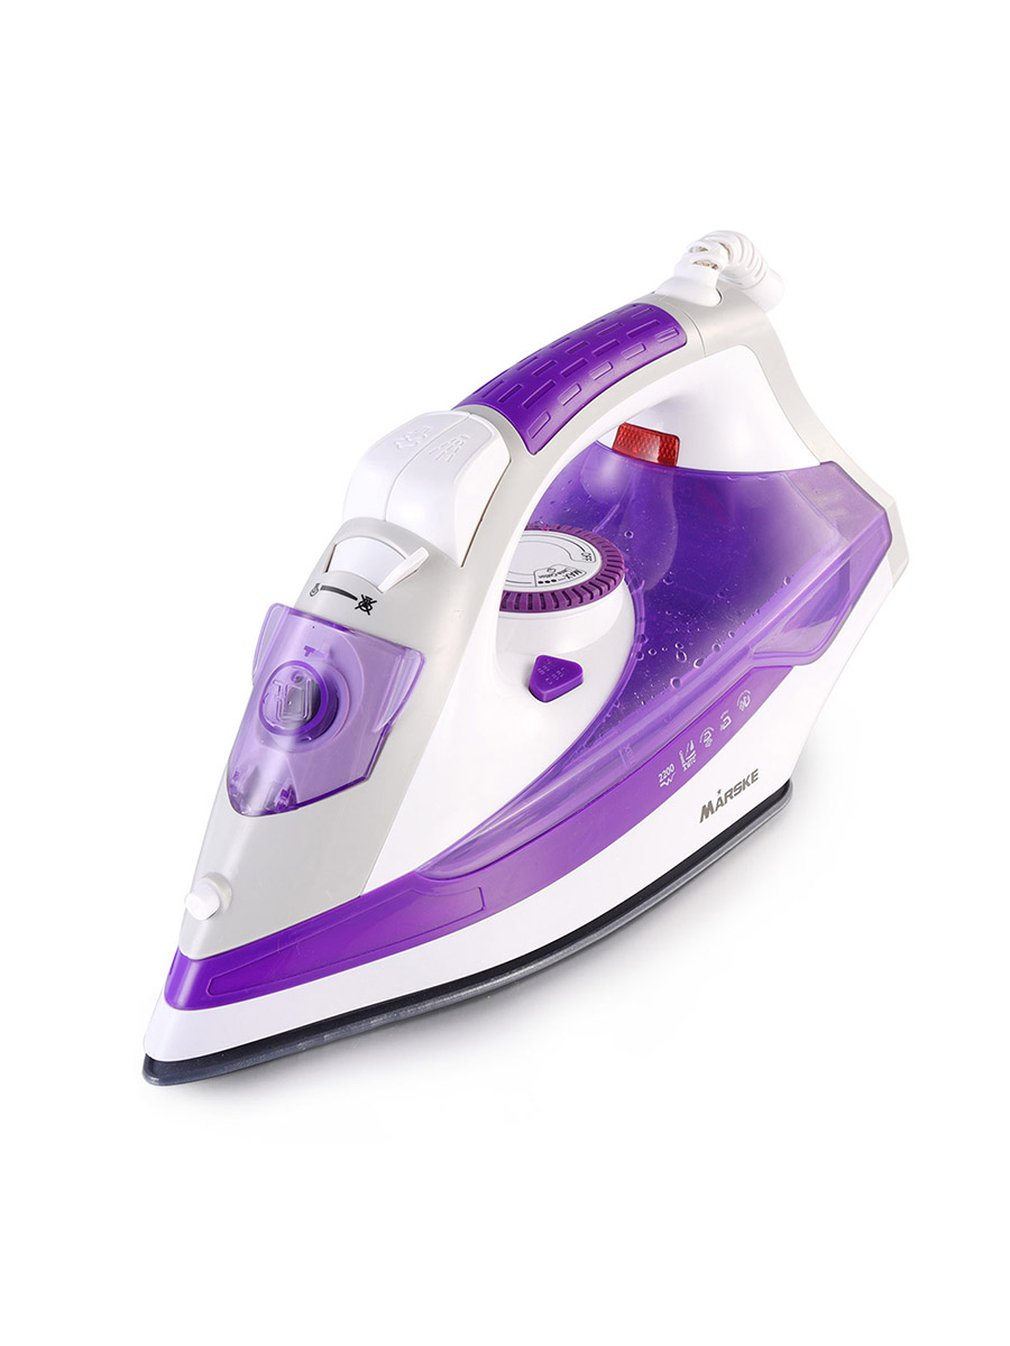 Electric Irons Steam Iron Ceramic Baseplate Steamer Portable Handheld Clothes For Travel Household Appliance|Electric Irons| |  - title=